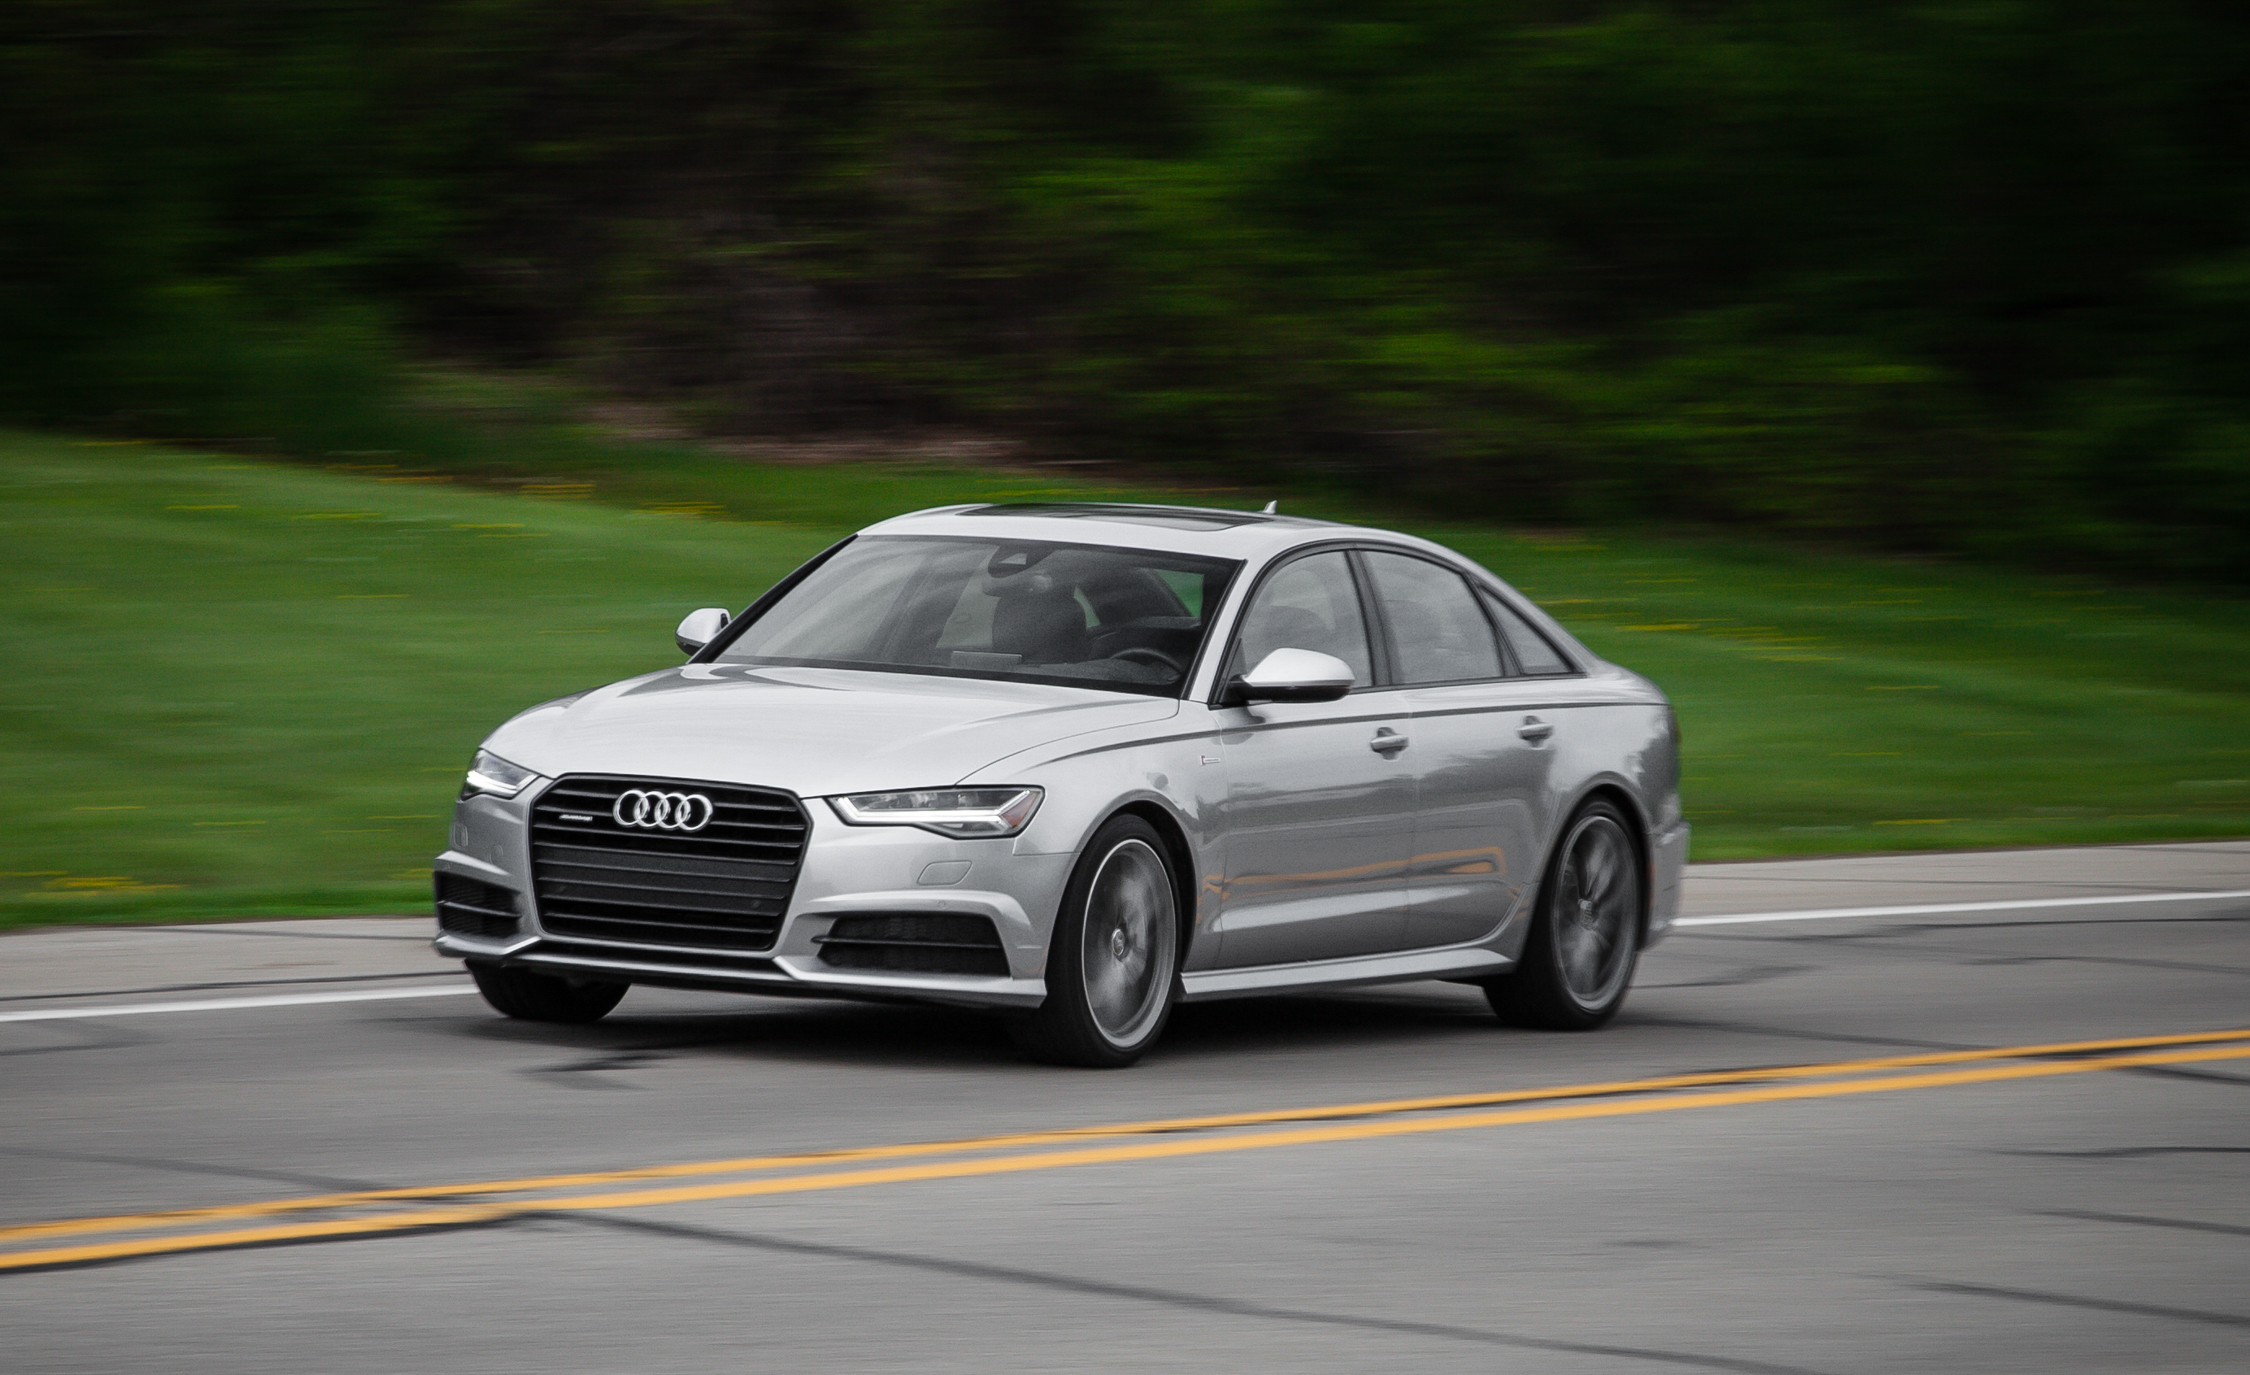 2016 Audi A6 (View 1 of 39)